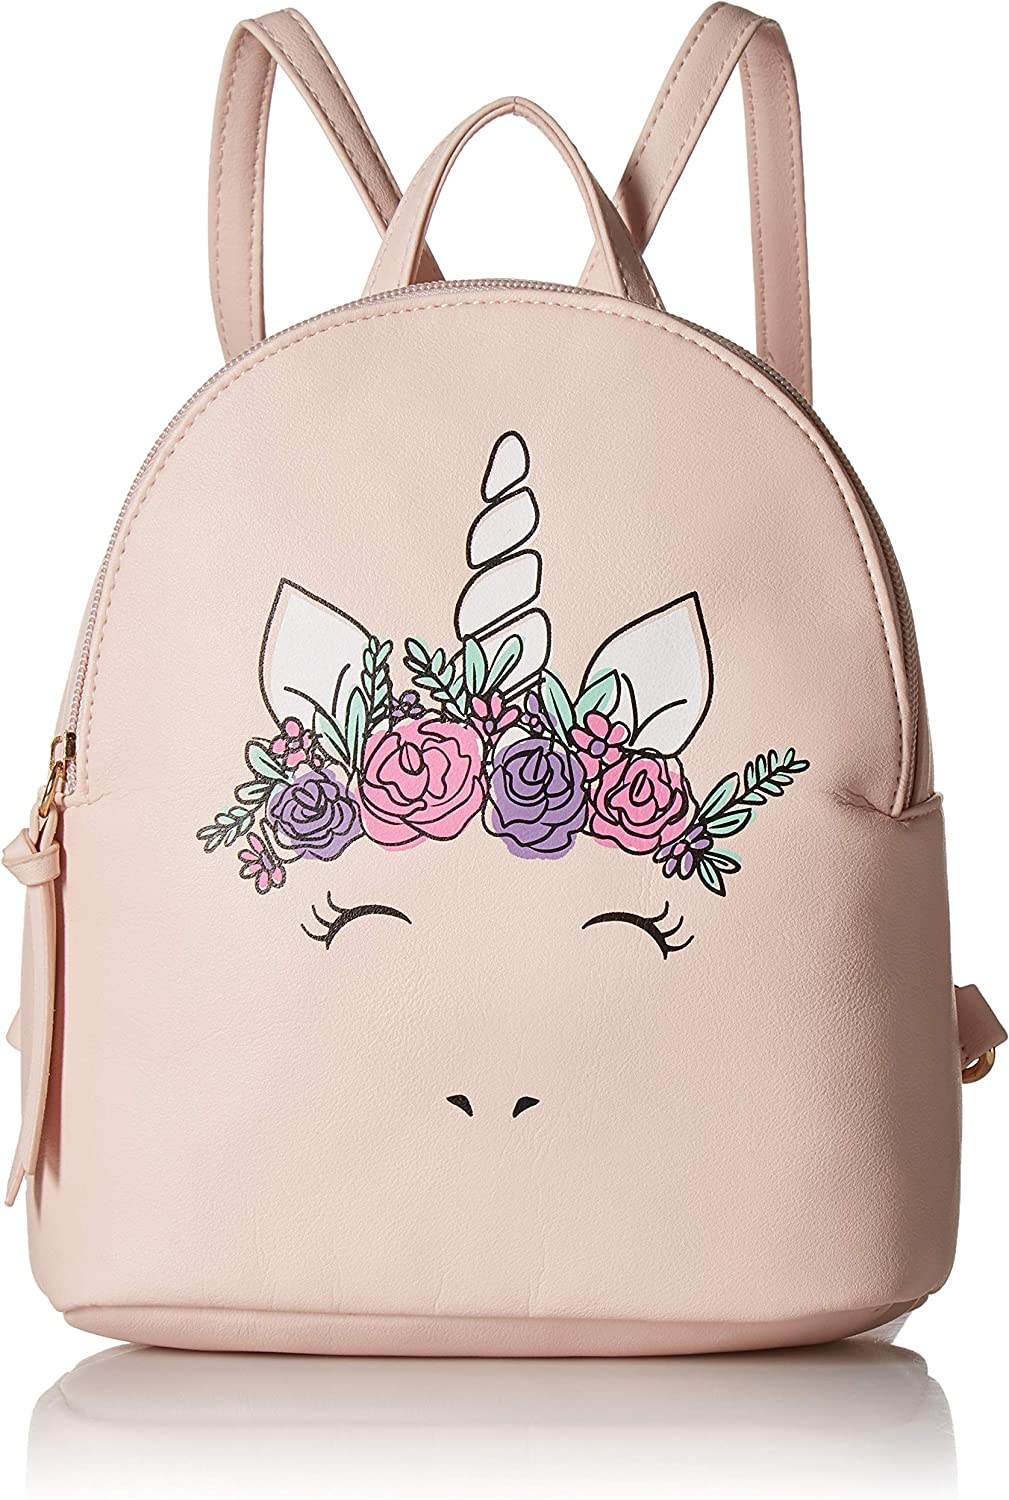 T-Shirt Jeans Womens Flower Crown Unicorn Backpack